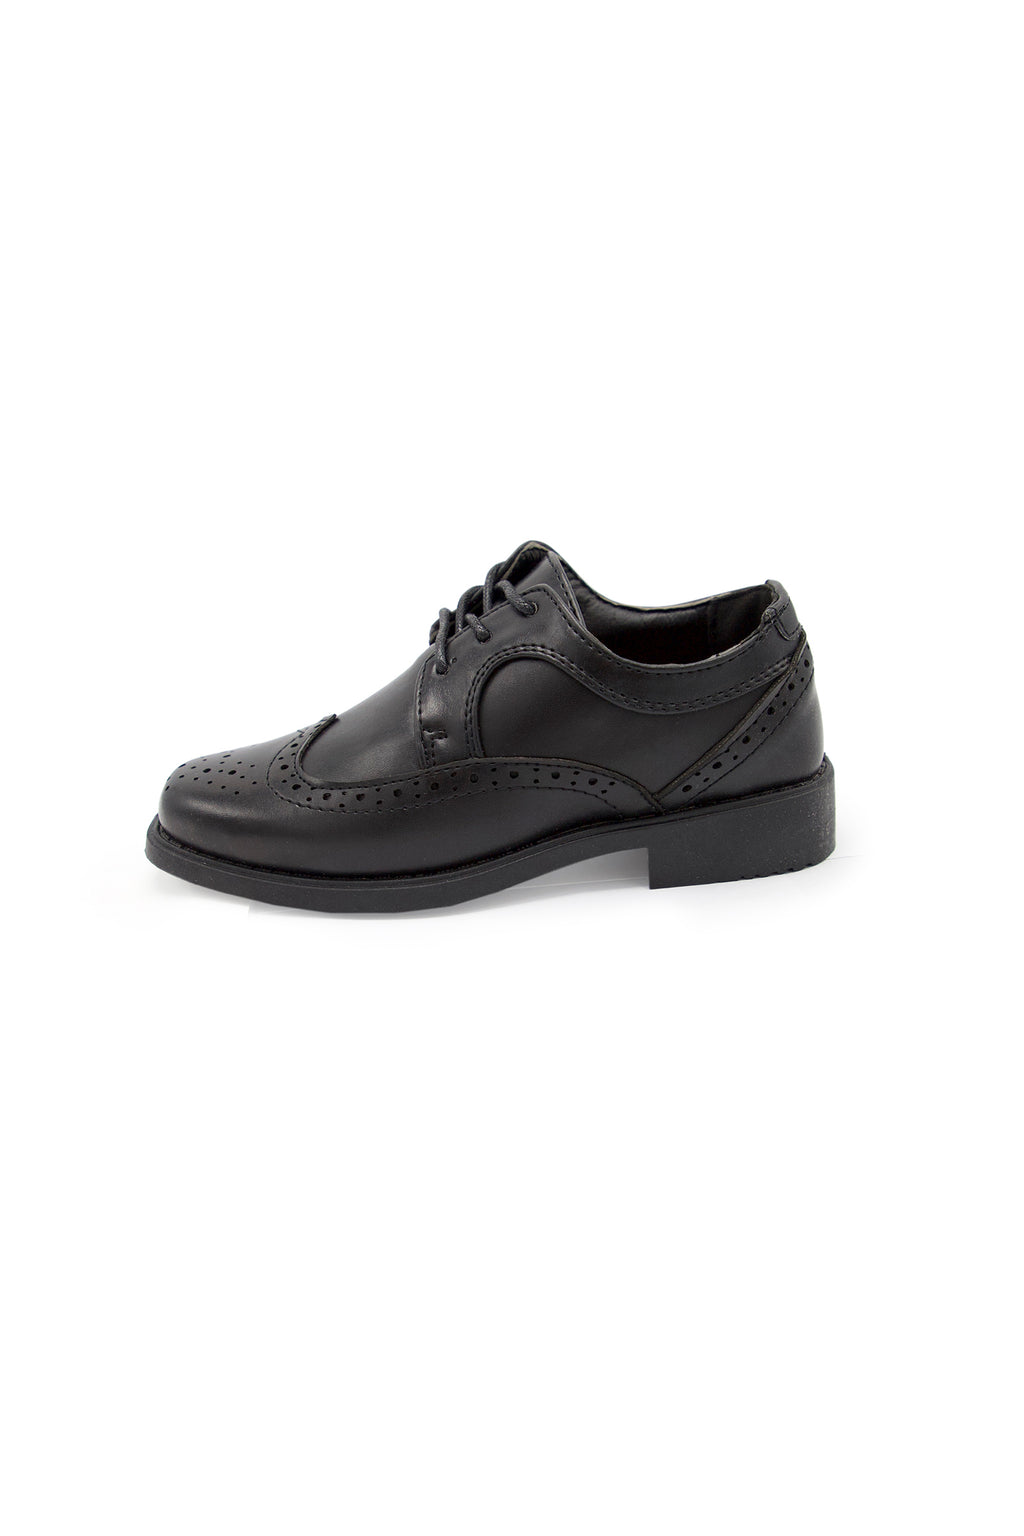 Classic English Style Boys Shoes